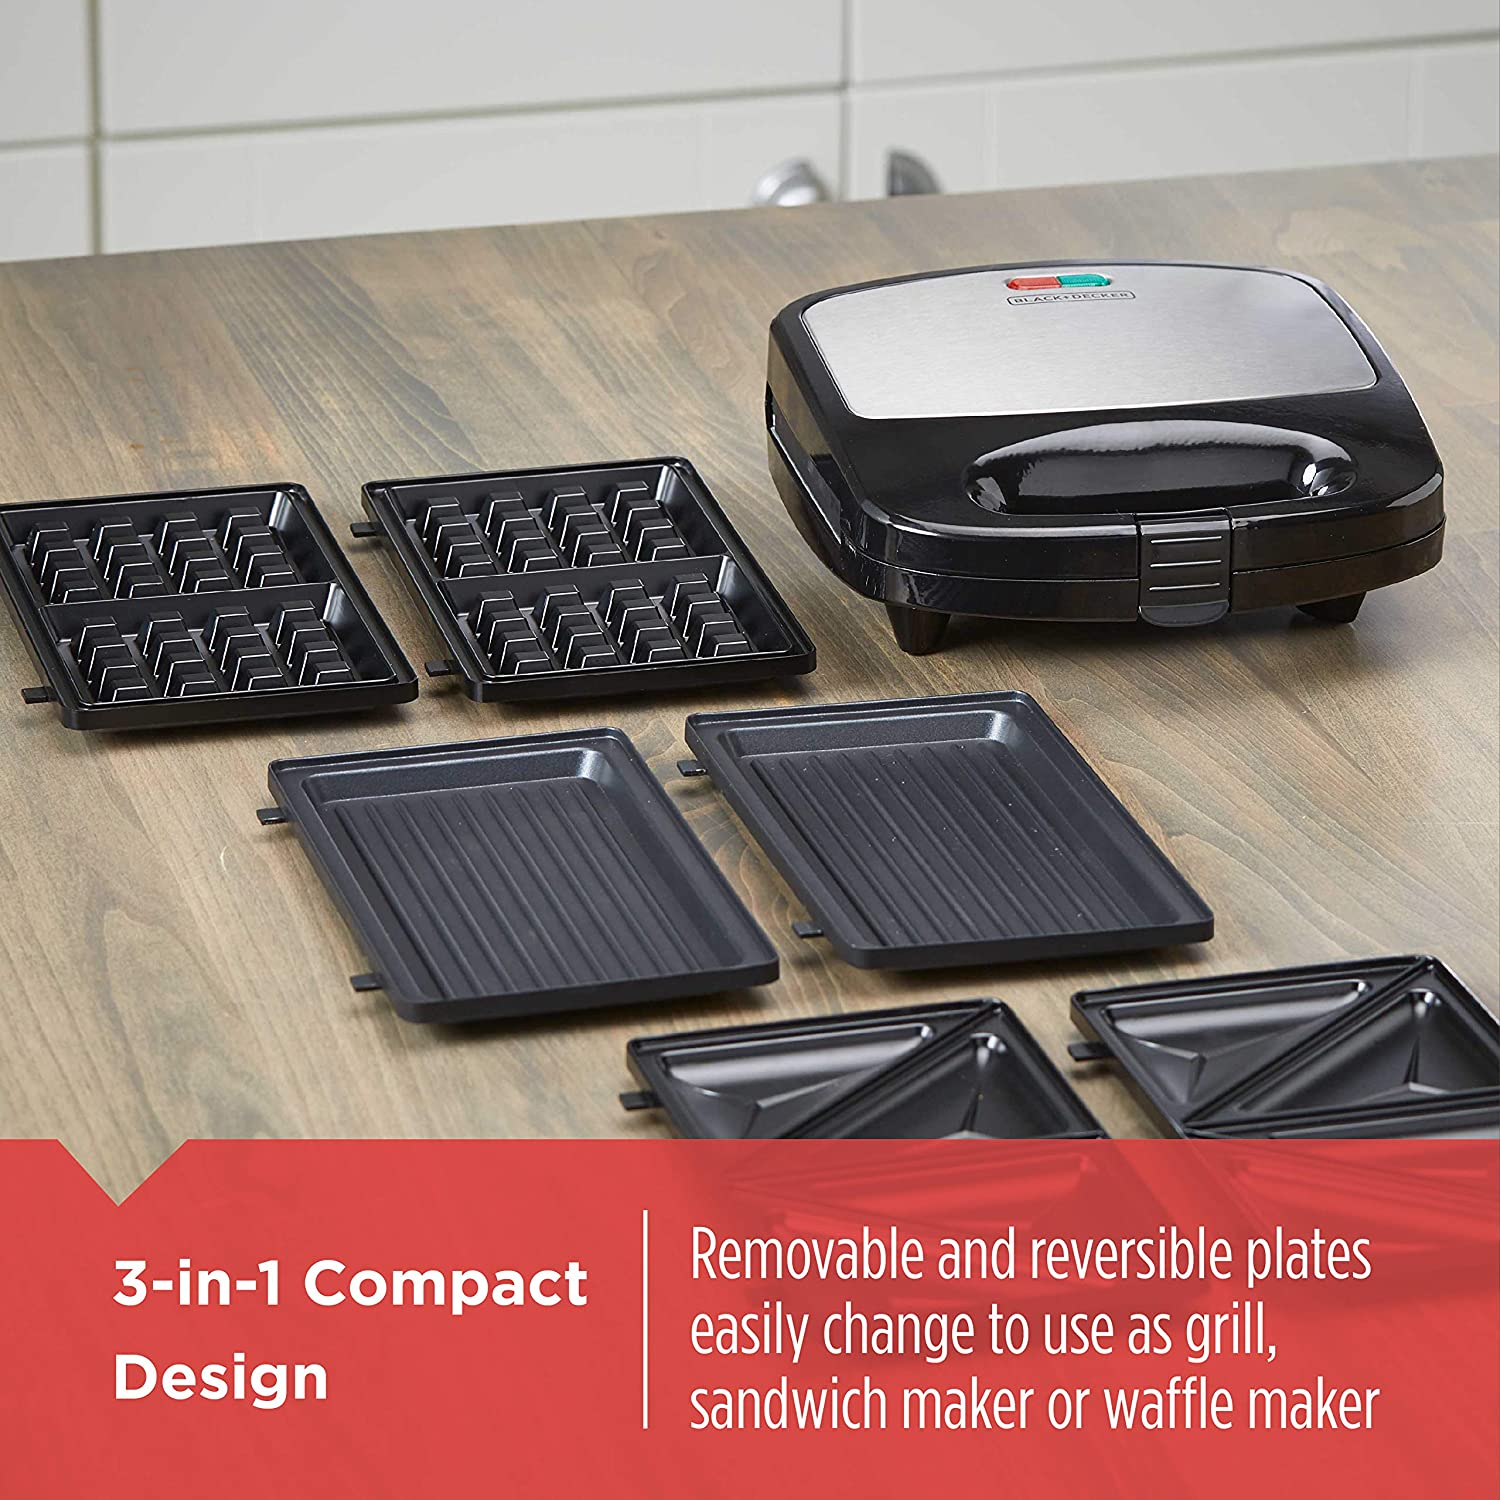 BLACK DECKER WM2000SD 3-in-1 Morning Meal Station Waffle, Grill, or Sandwich Maker, Compact Design, Black Silver